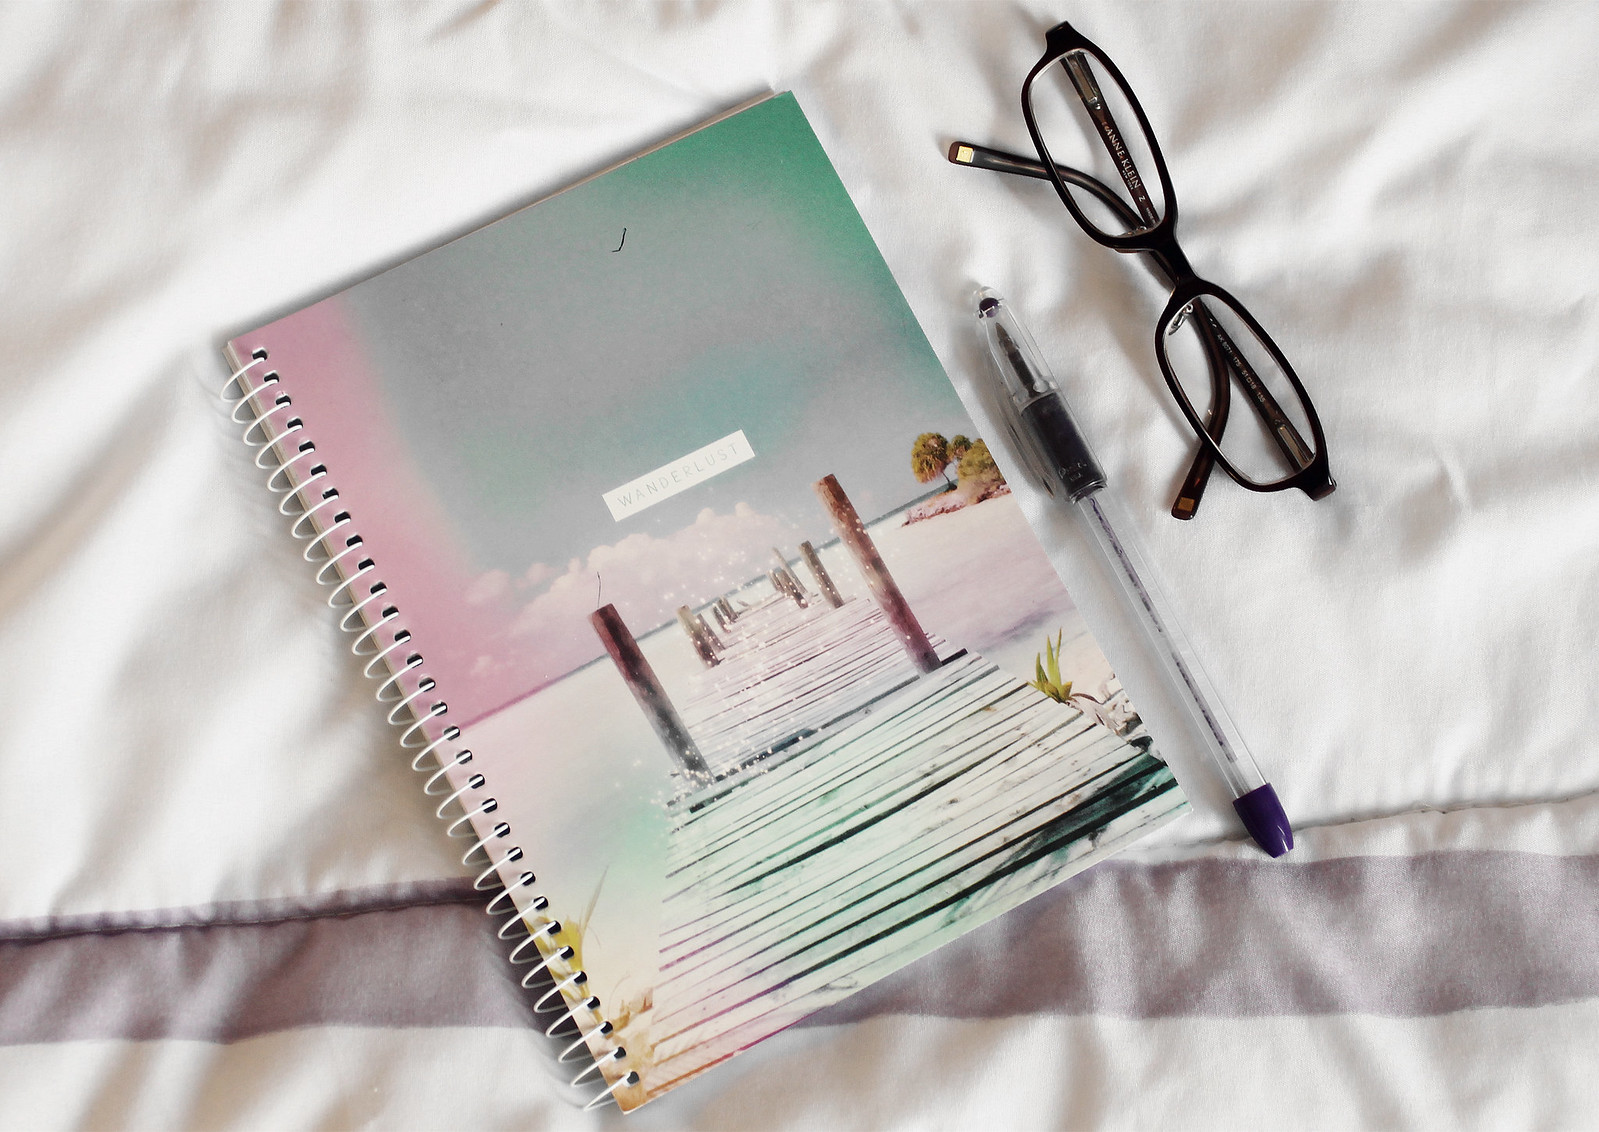 2891-typo-cottonon-wanderlust-notebook-stationary-lifestyle